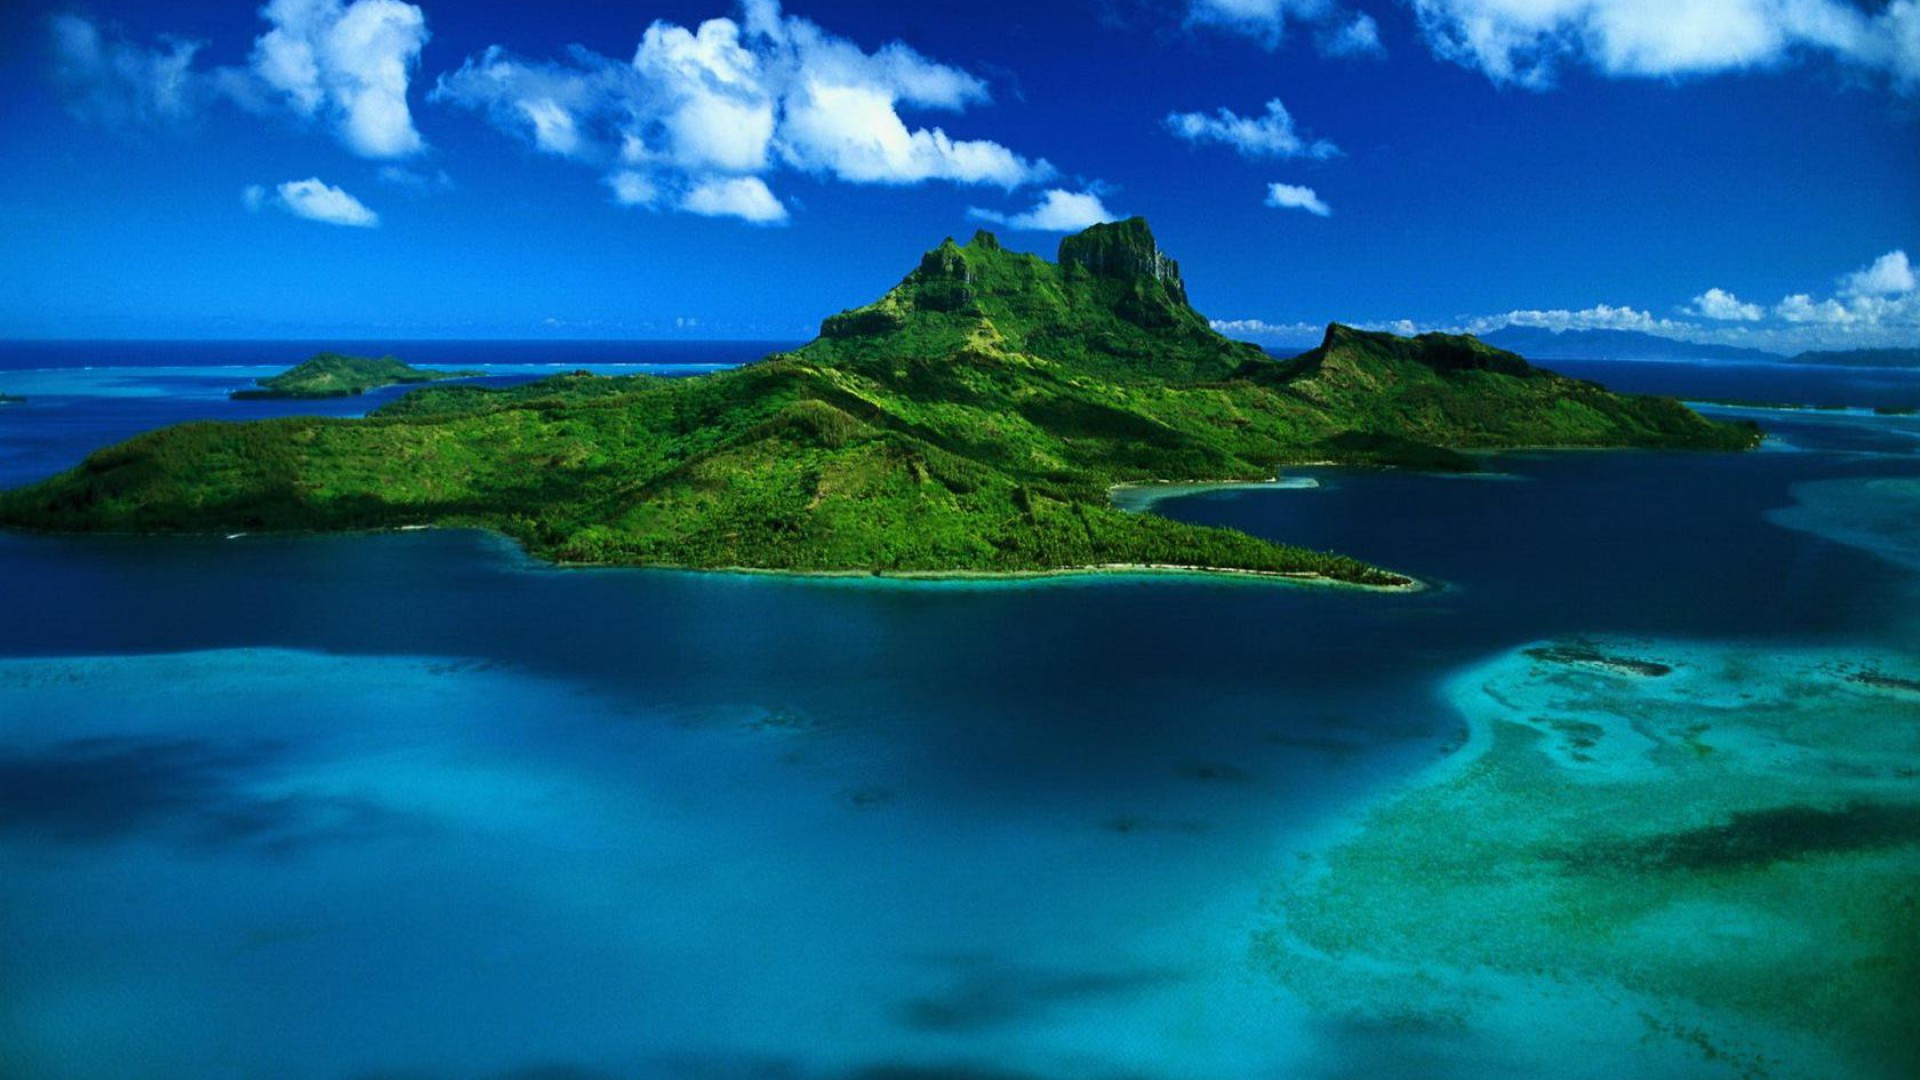 Astonishing Water Tropical Island Wallpaper 1920x1080px